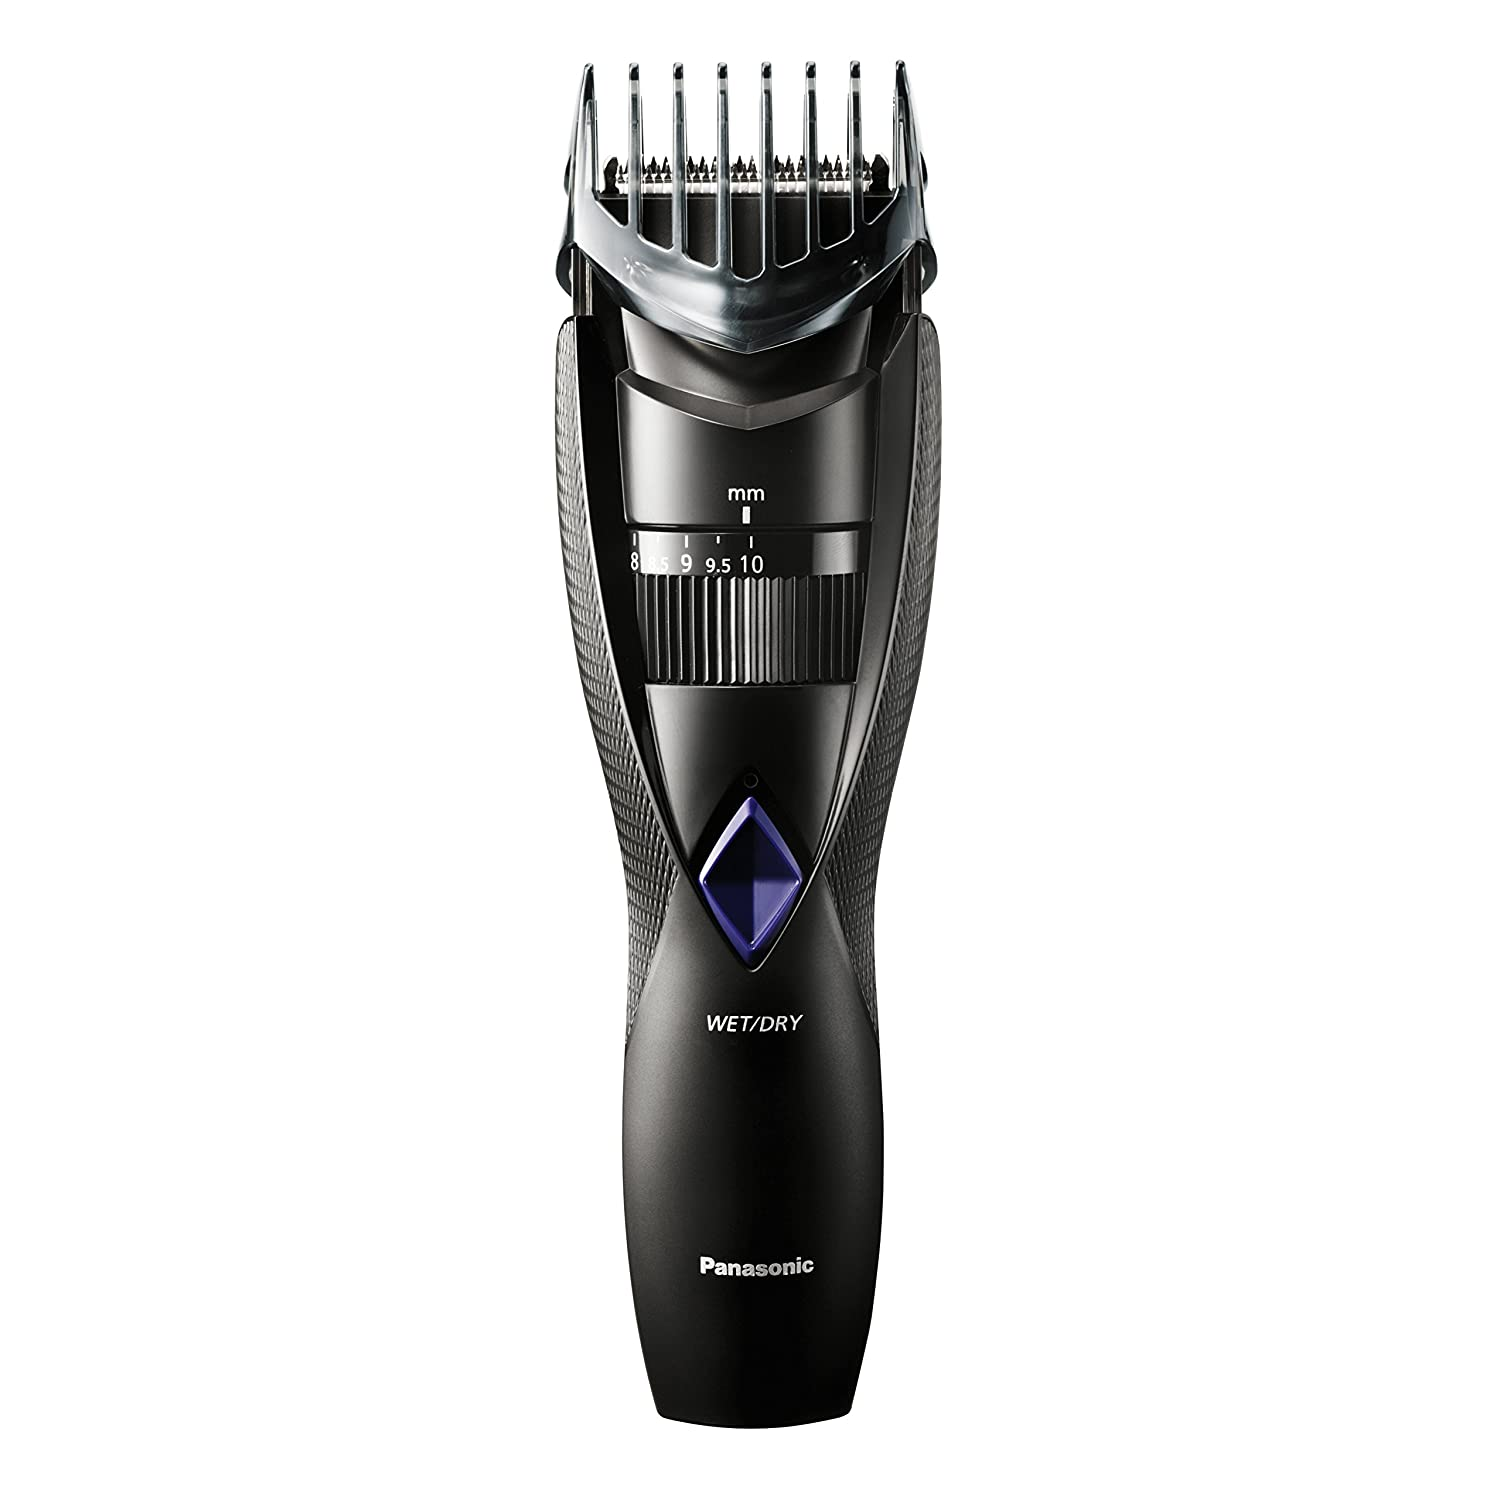 Panasonic Wet and Dry Cordless Electric Beard and Hair Trimmer